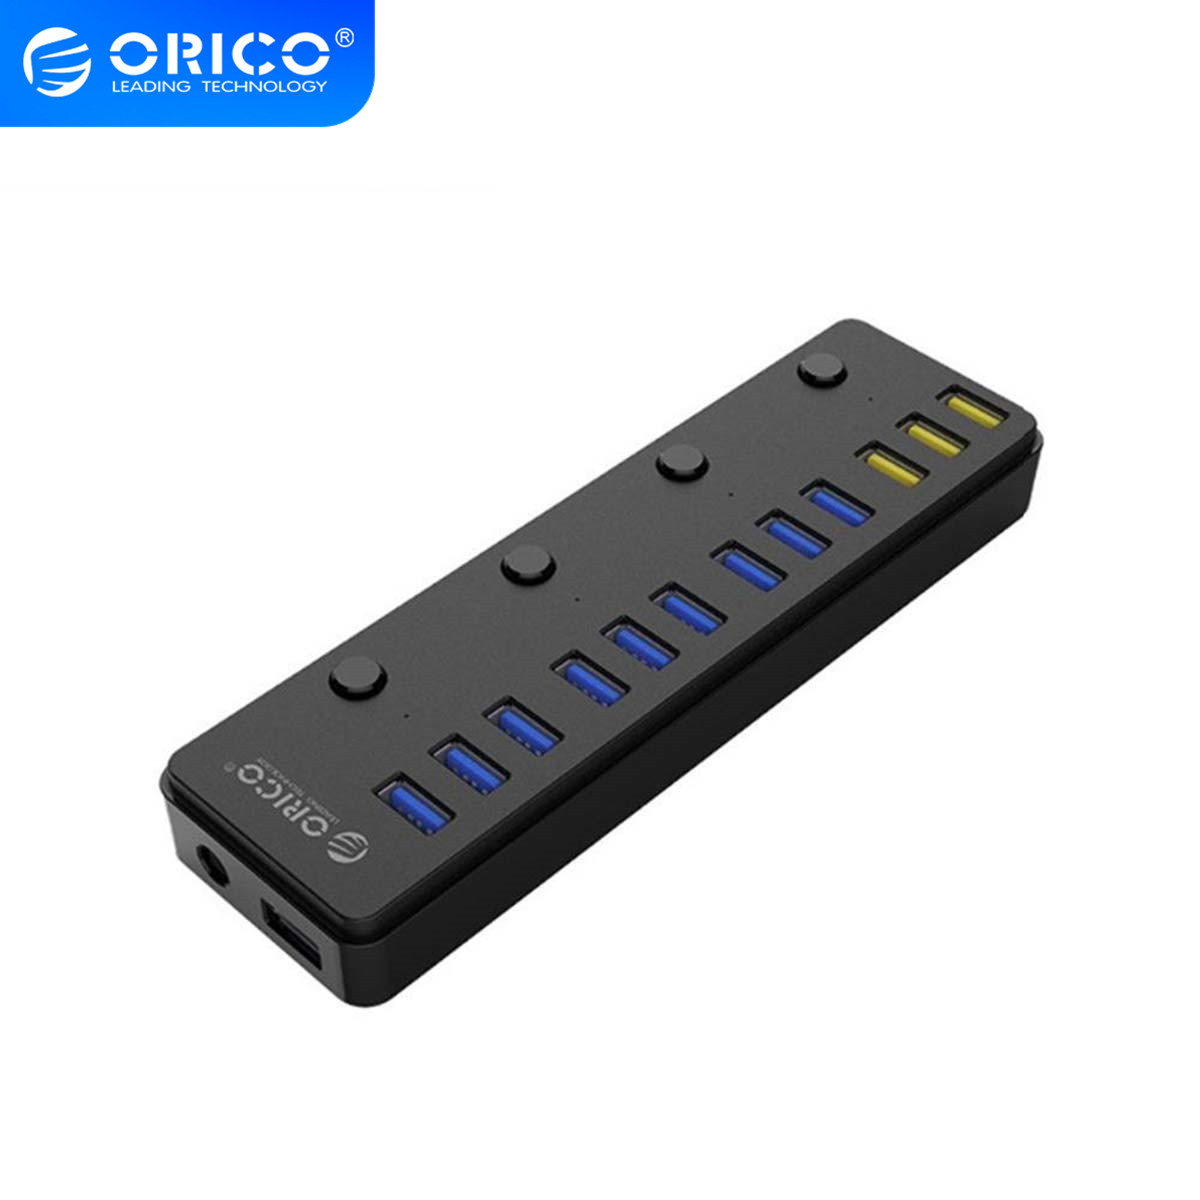 ORICO 12 Port USB 3.0 HUB With 12V 5A Power Adapter Multi USB HUB Splitter with 3 Port BC1.2 usb Charging for Laptop PC phone